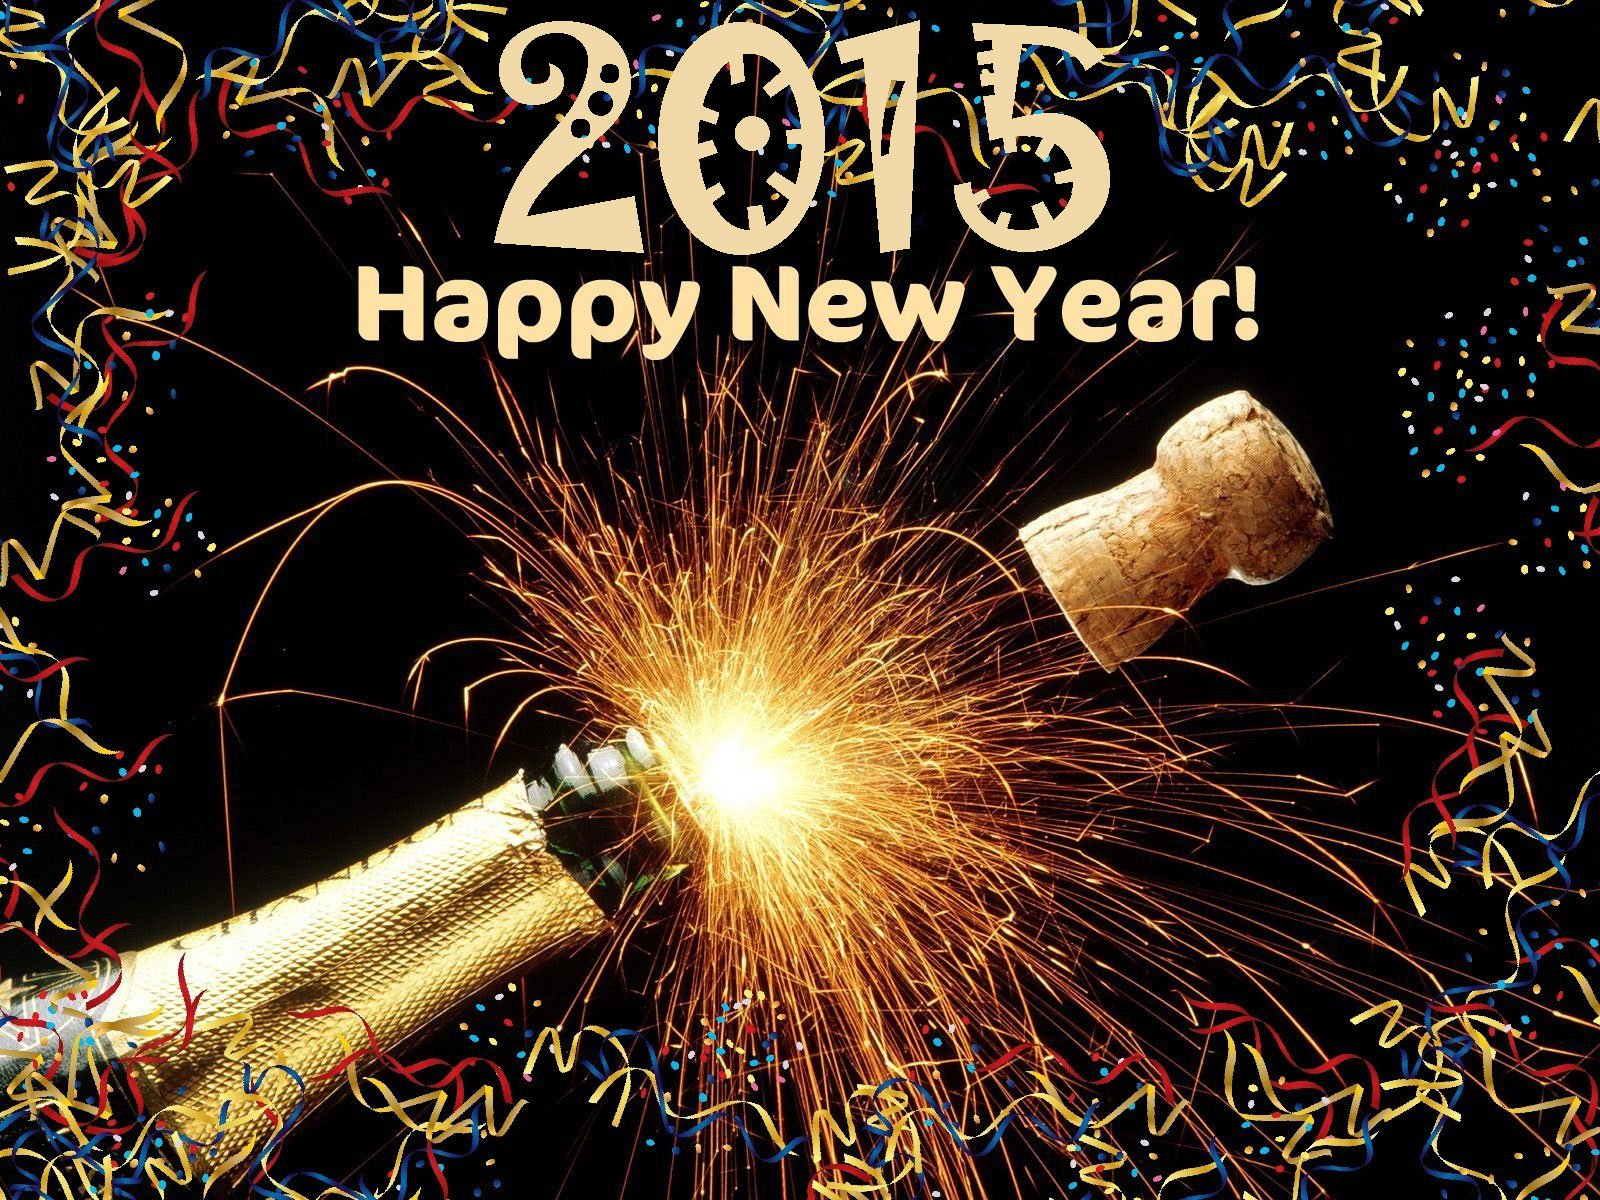 Happy New Year 2015 Wallpaper 3d 16   Engledow Group 1600x1200